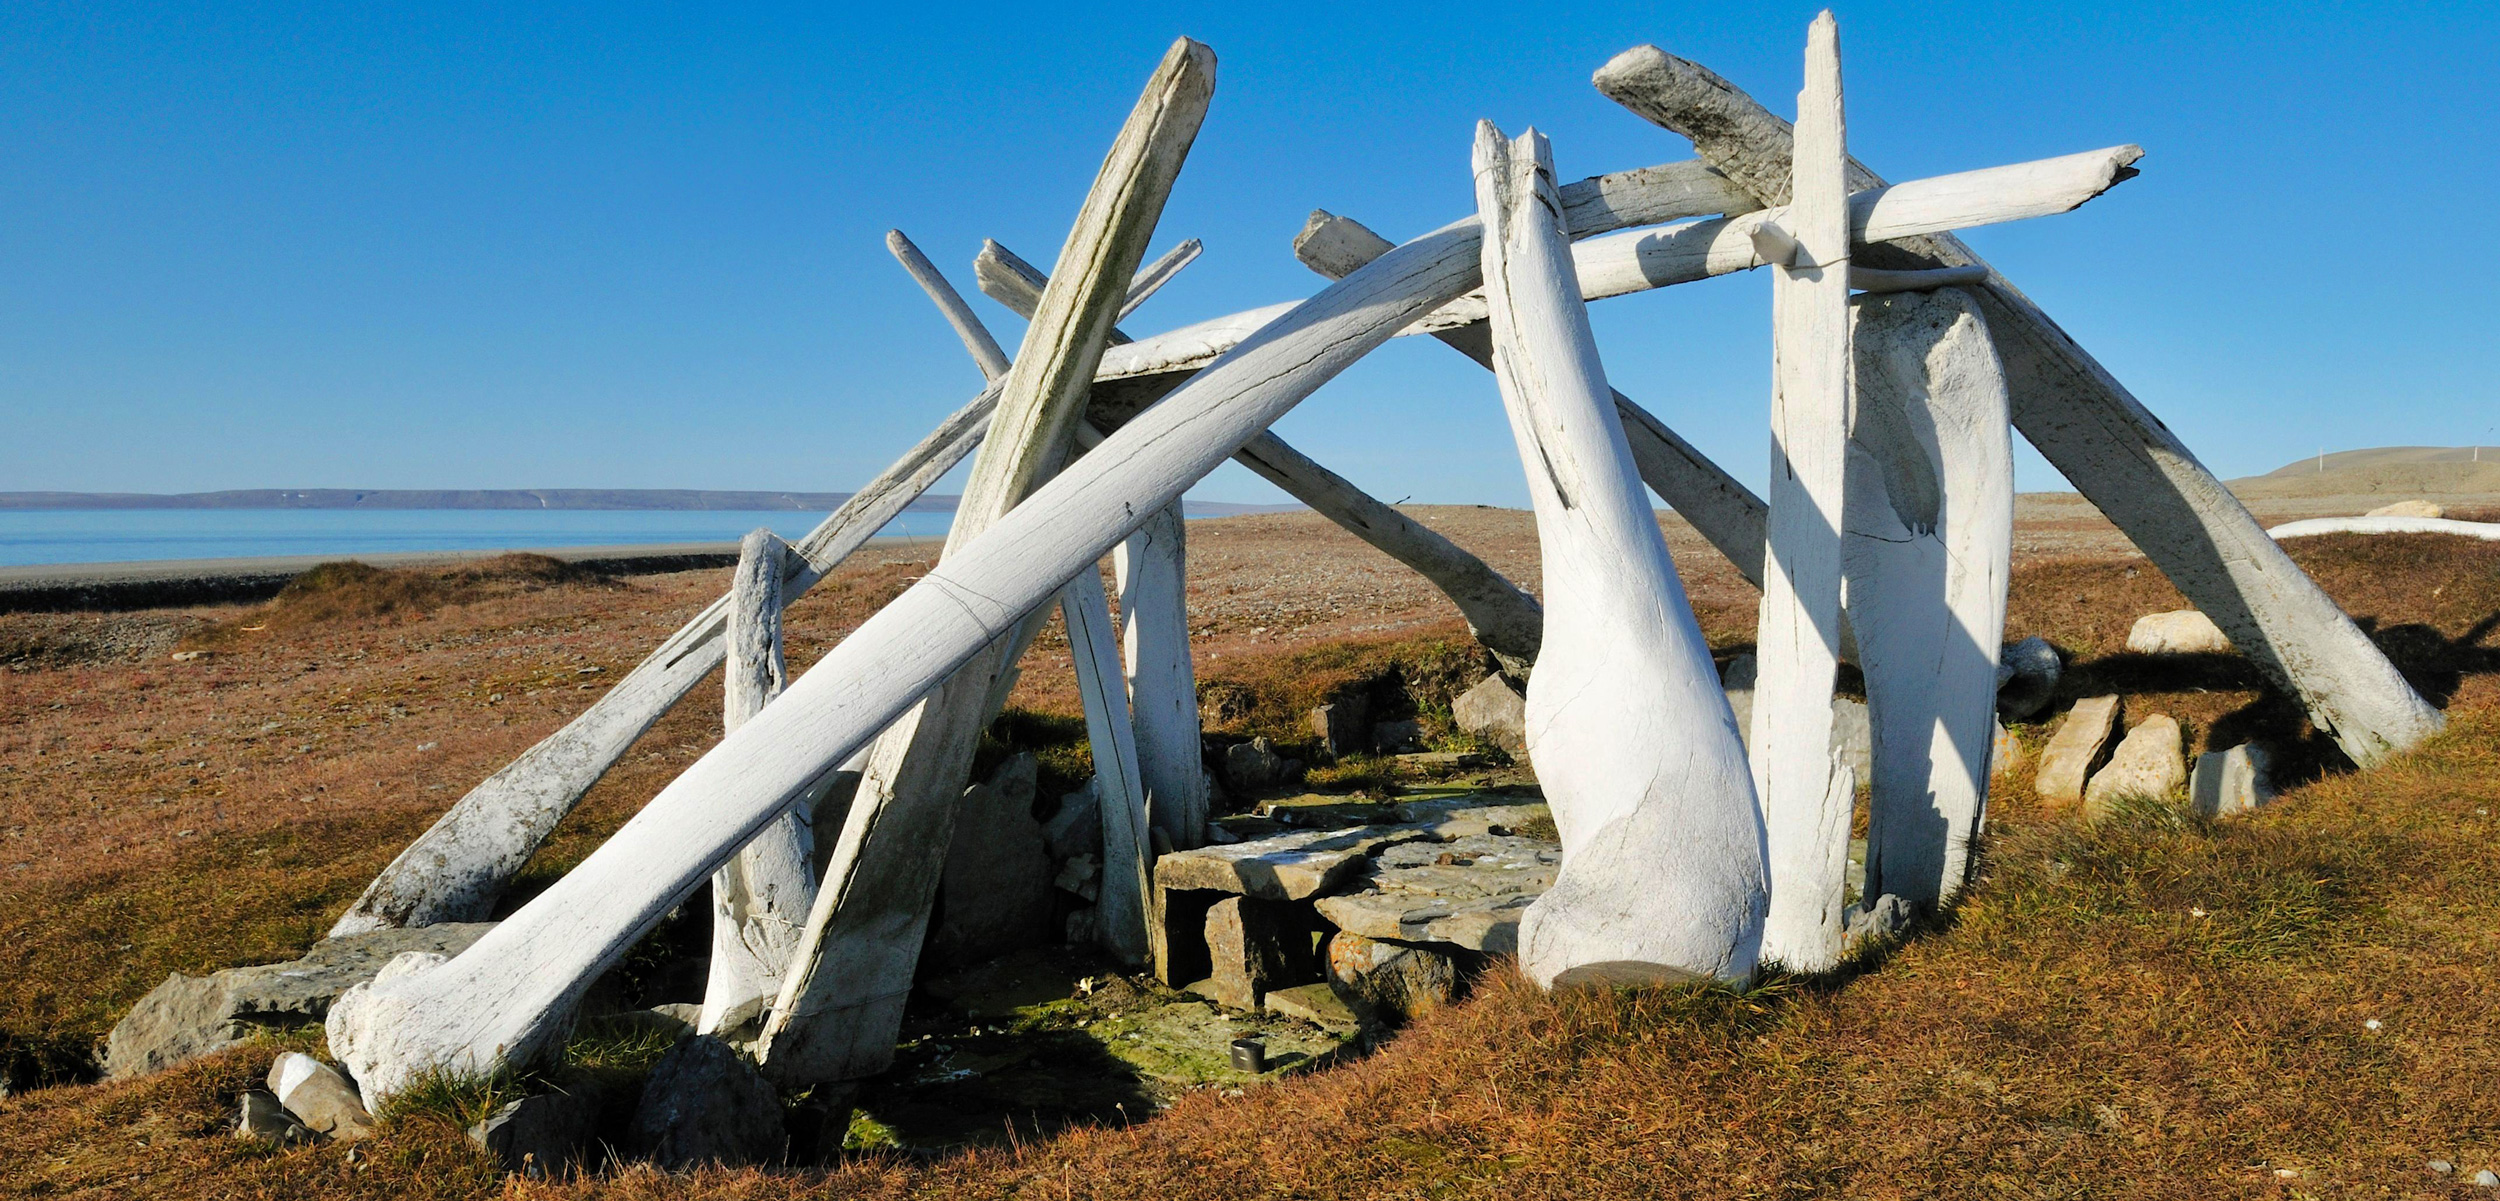 This replica whale bone house on Cornwallis Island, Nunavut, shows how the homes were constructed hundreds of years ago. Photo by age fotostock/Alamy Stock Photo